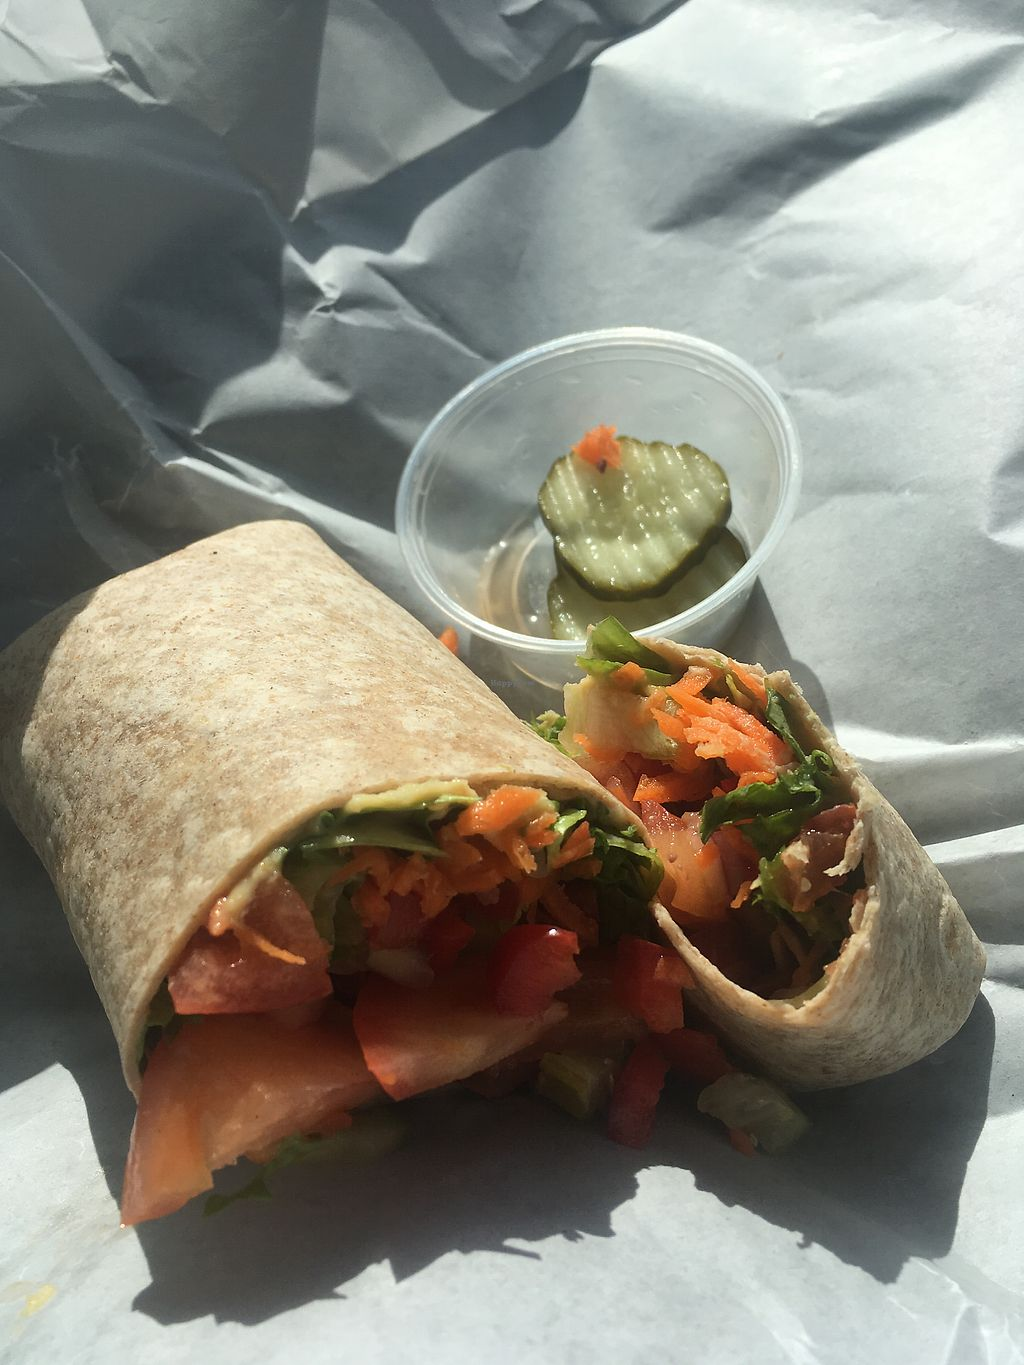 """Photo of Good Karma Cafe & Health Foods  by <a href=""""/members/profile/LukeHayward"""">LukeHayward</a> <br/>Hummus and Veggie Wrap <br/> April 2, 2018  - <a href='/contact/abuse/image/95457/379922'>Report</a>"""